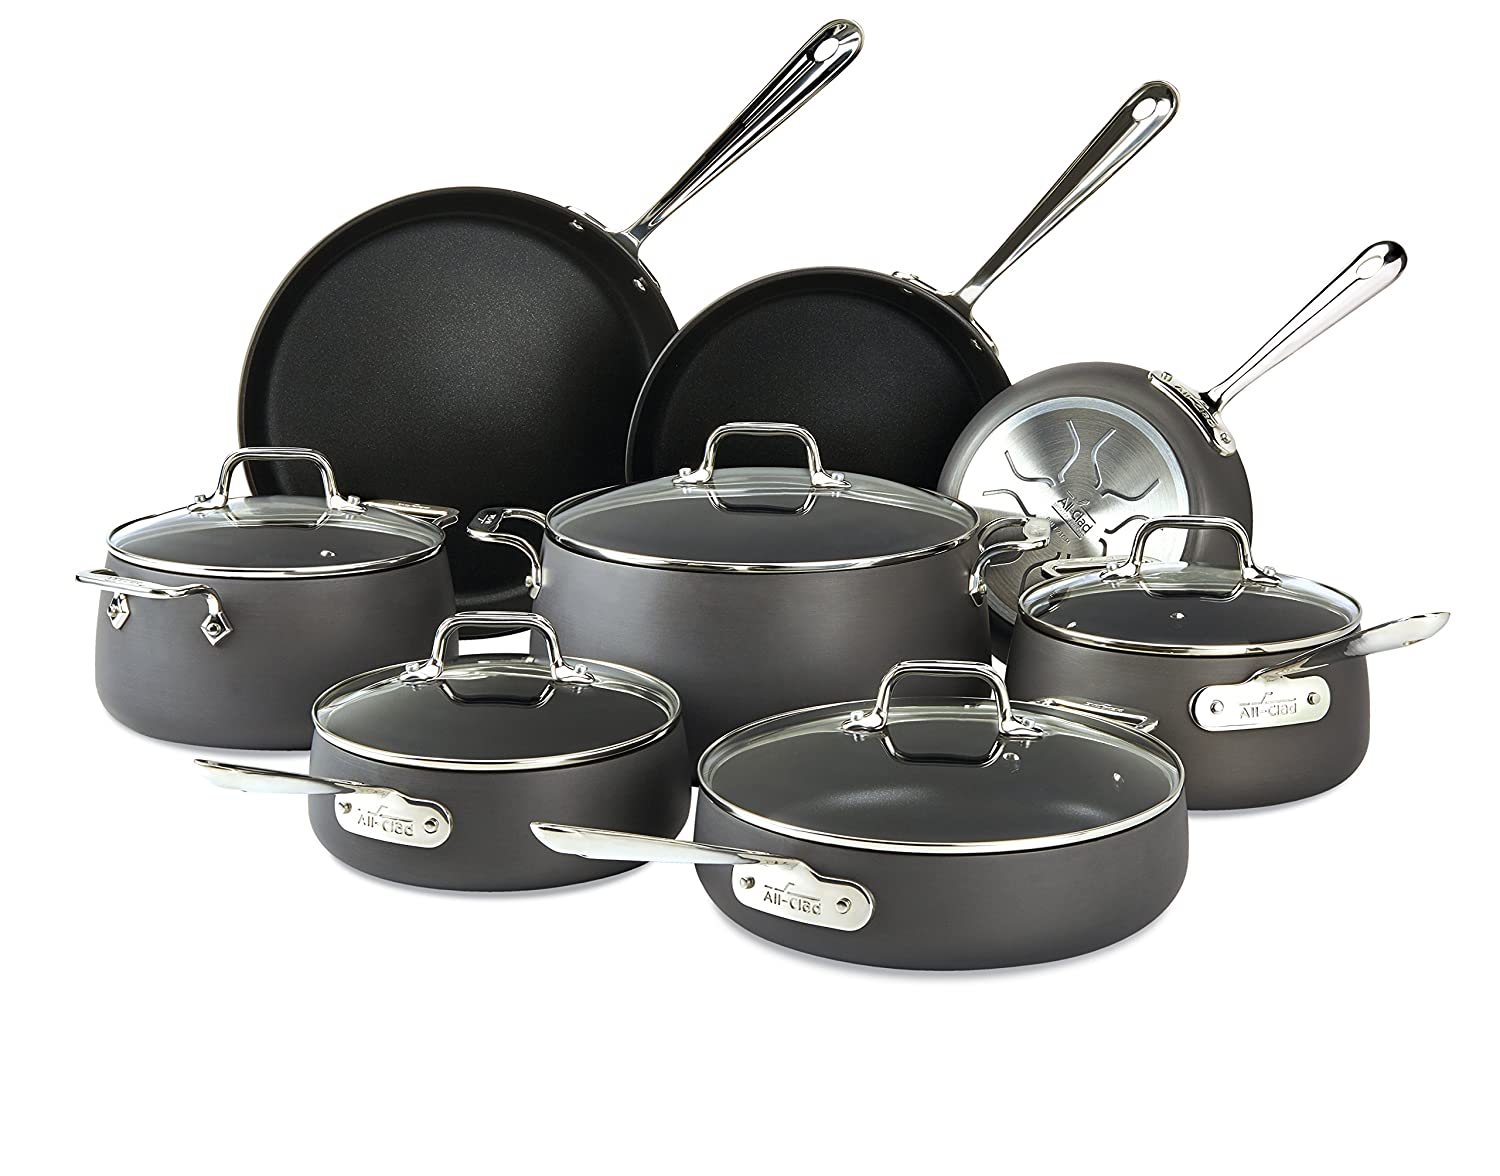 All-Clad Hard Anodized Nonstick Cookware Set